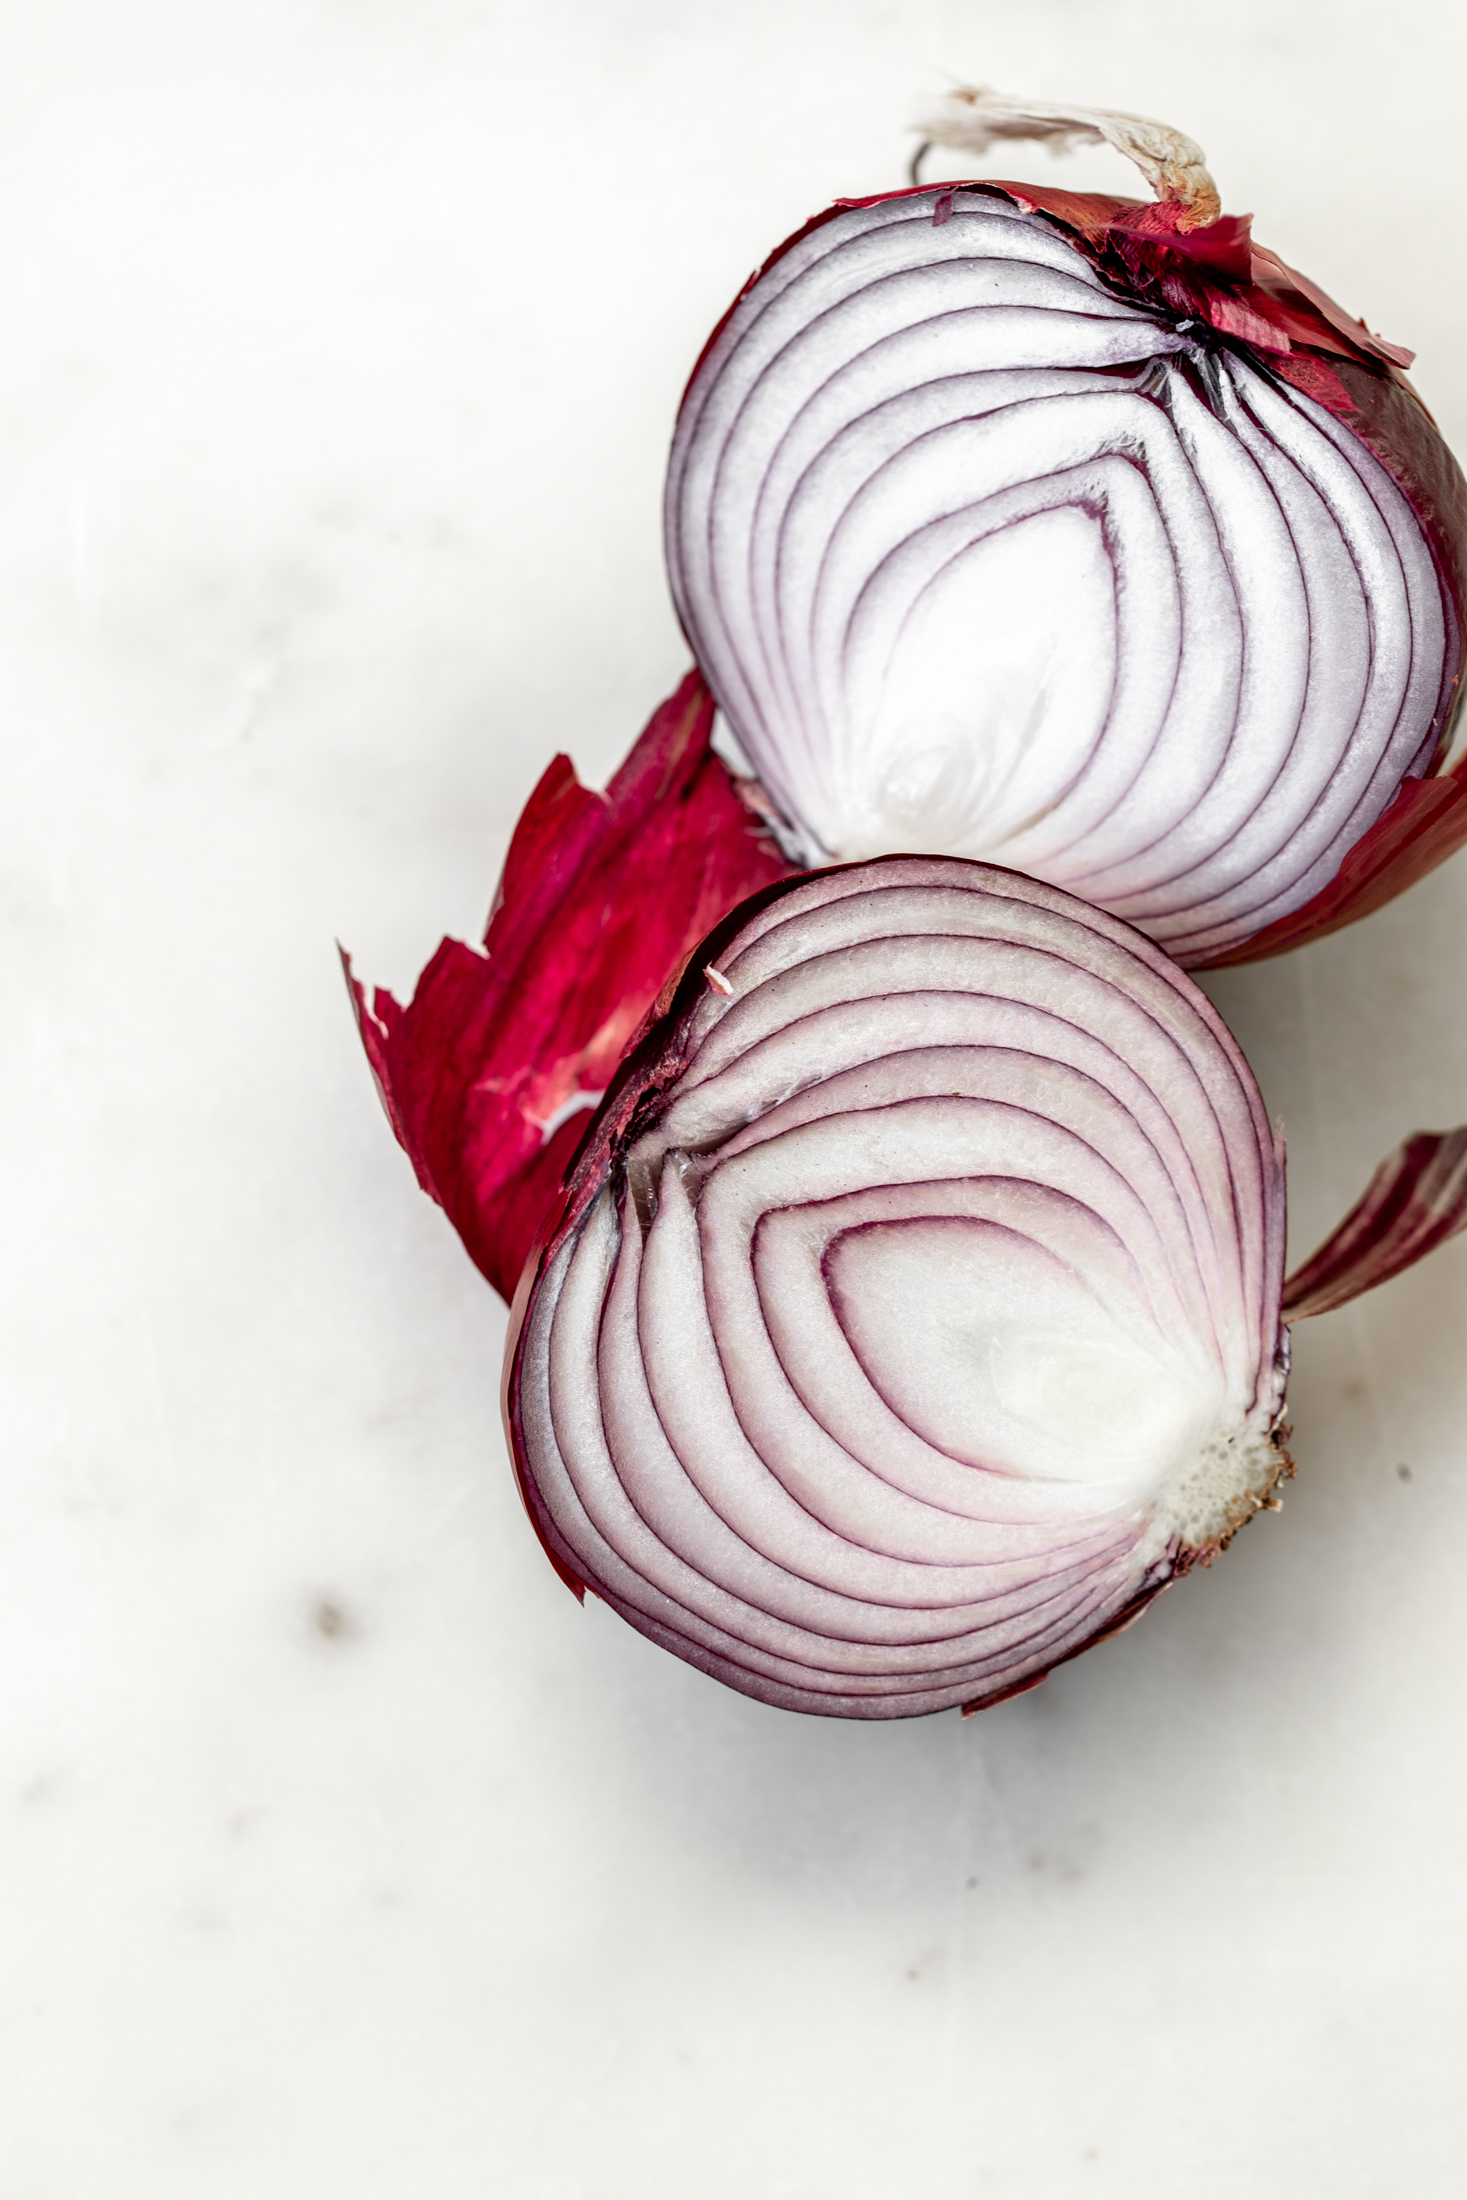 red onion ingredients